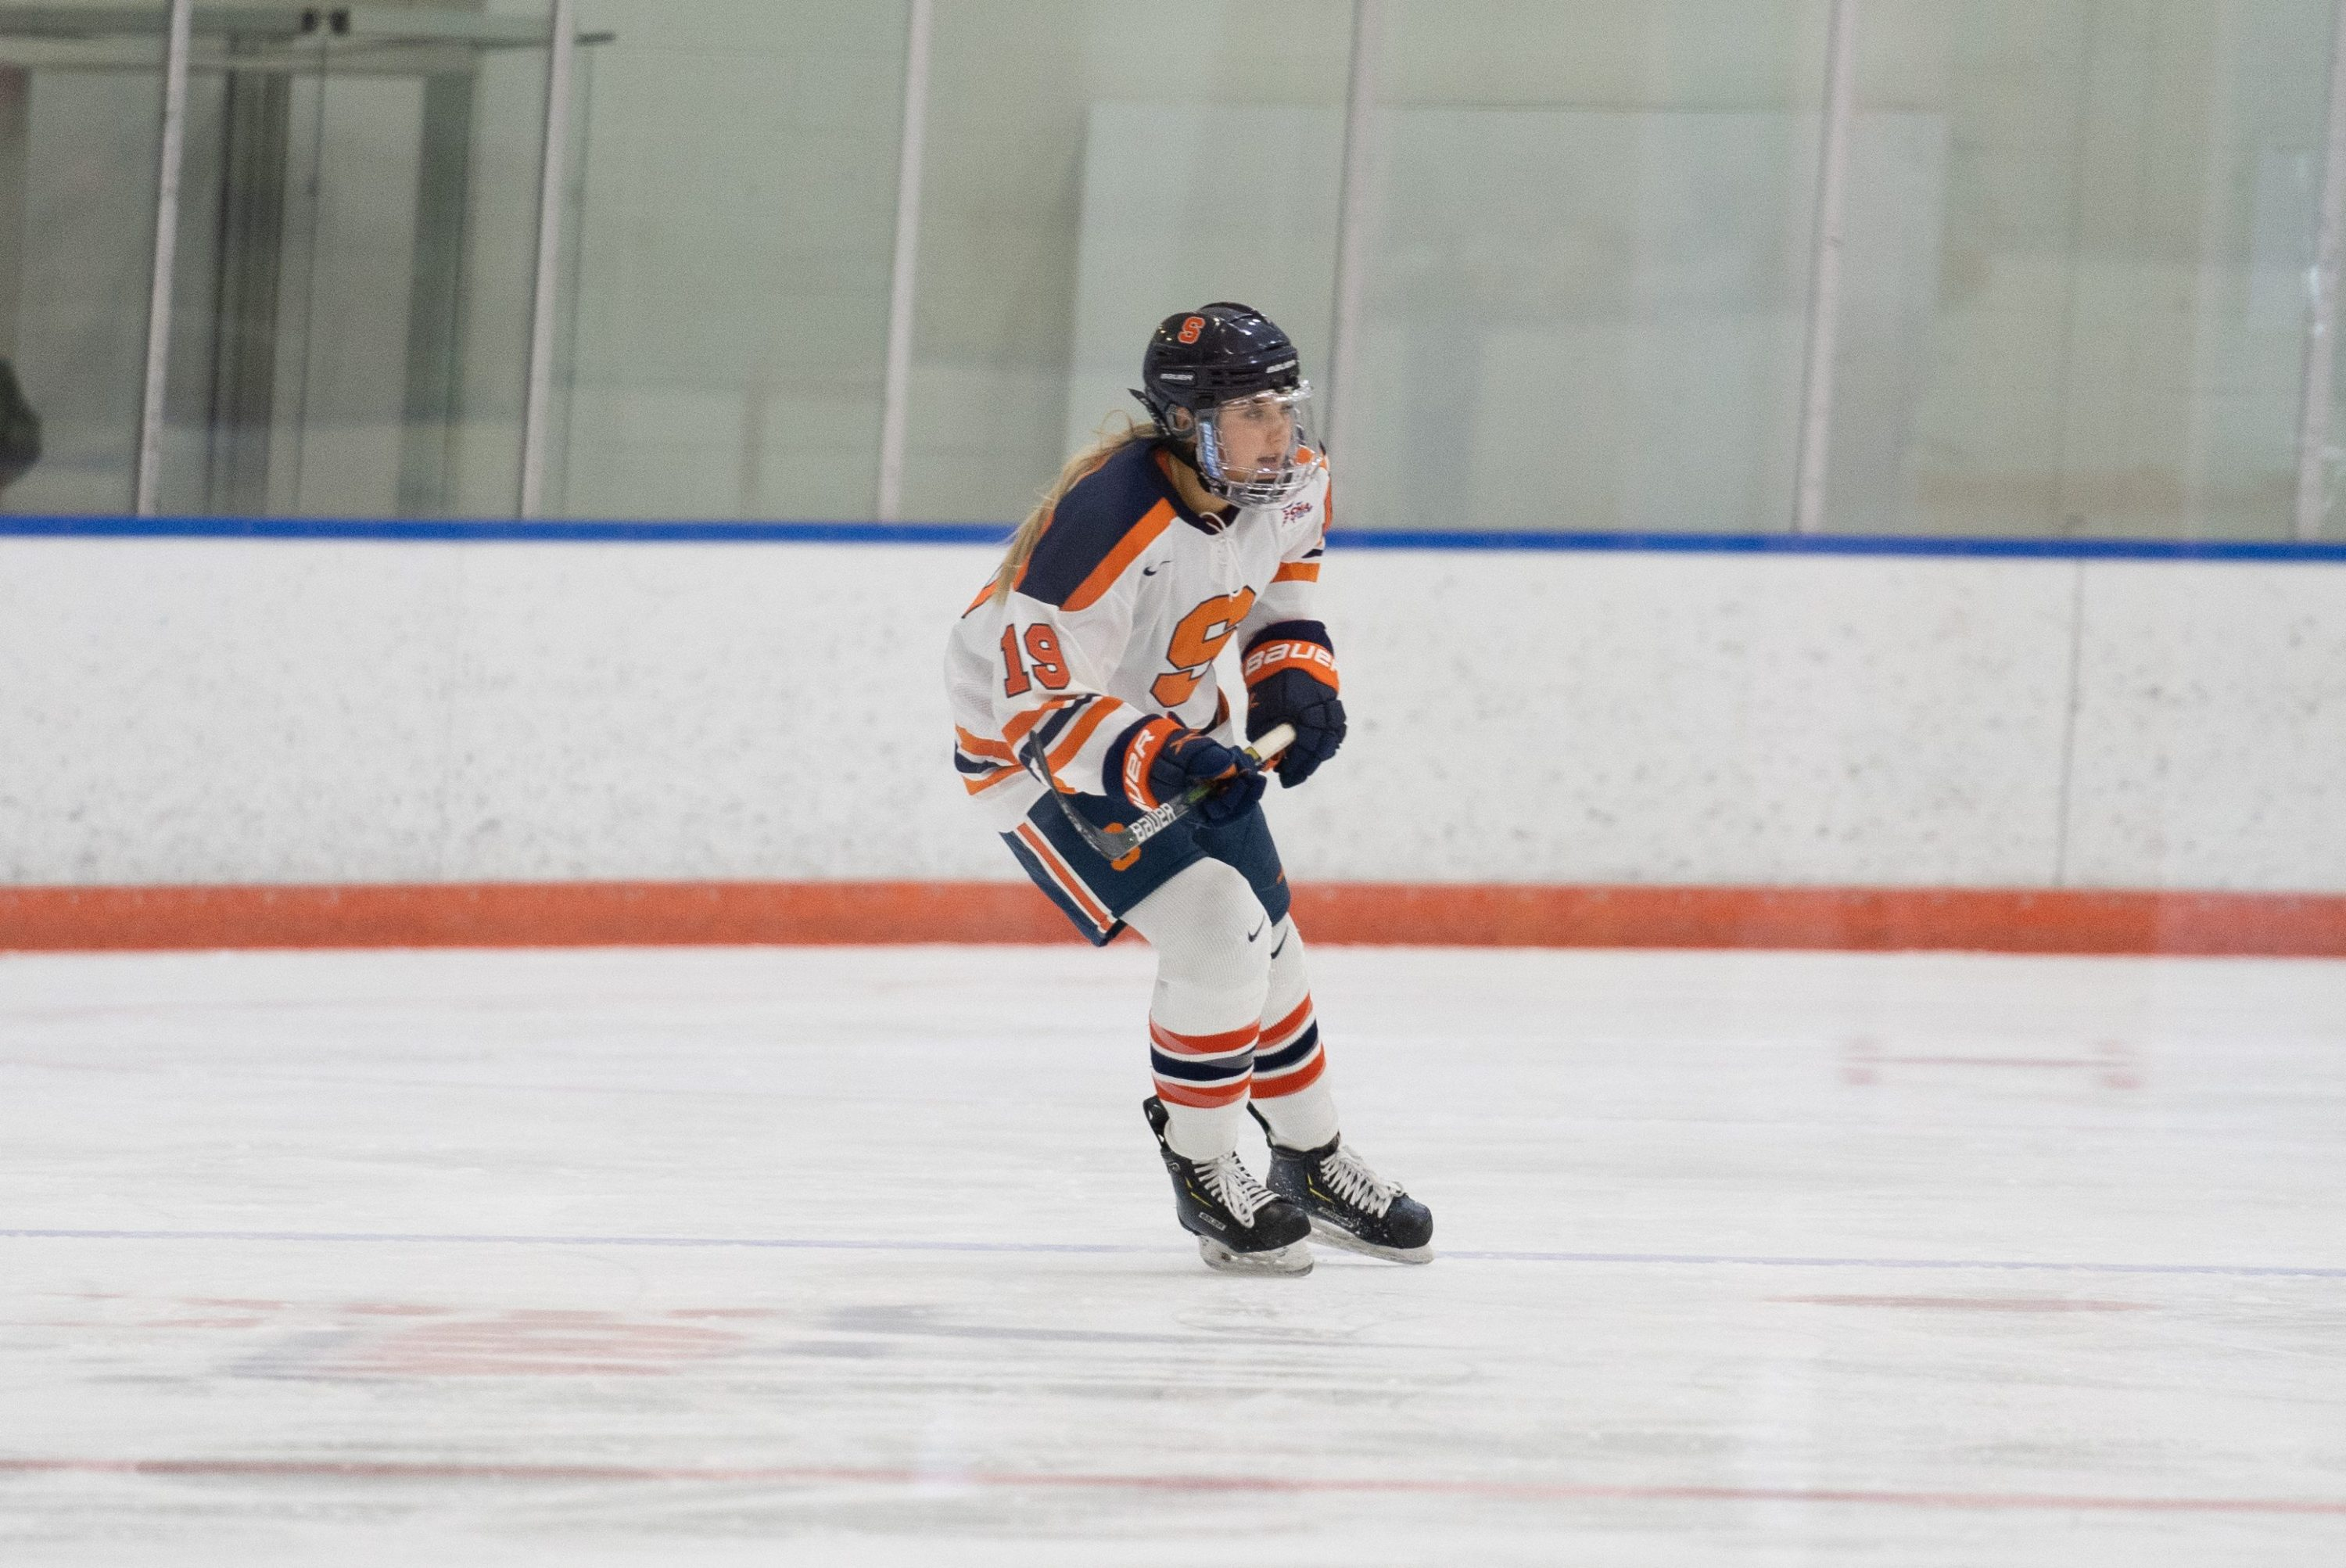 Anna Leschyshyn score three goals between two periods during a Syracuse 5-0 win over LIU on Feb. 20, 2021.